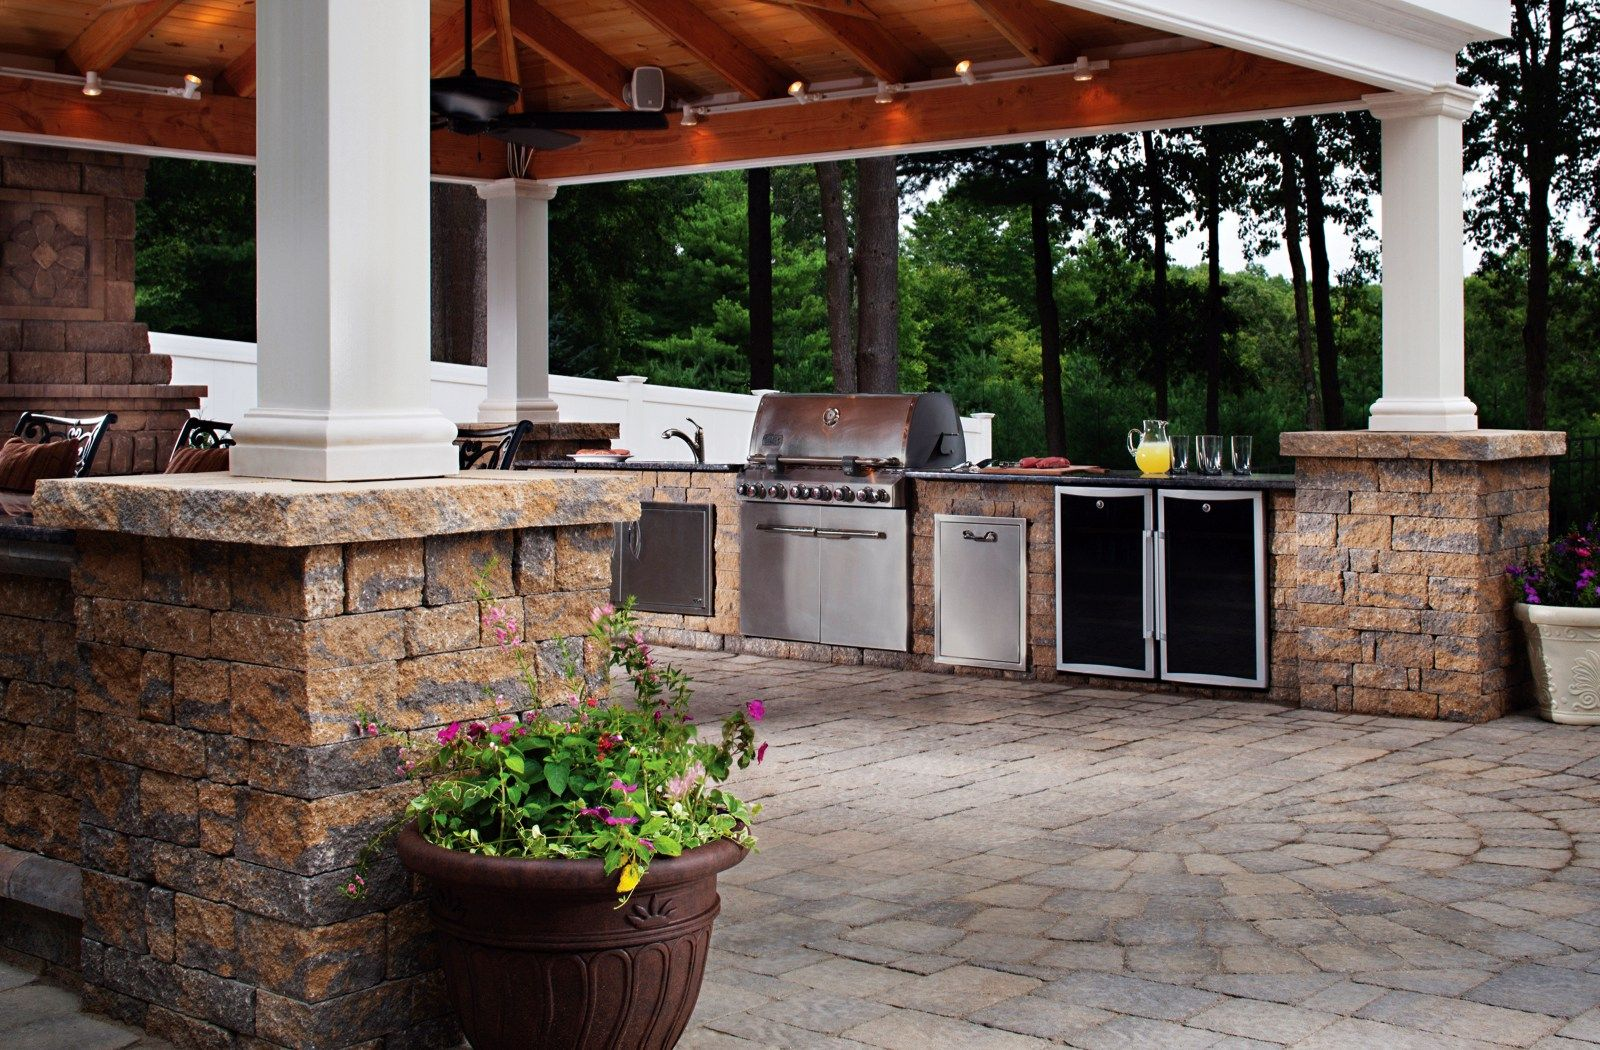 Find Out What's Cooking in the Latest Outdoor Kitchen ...